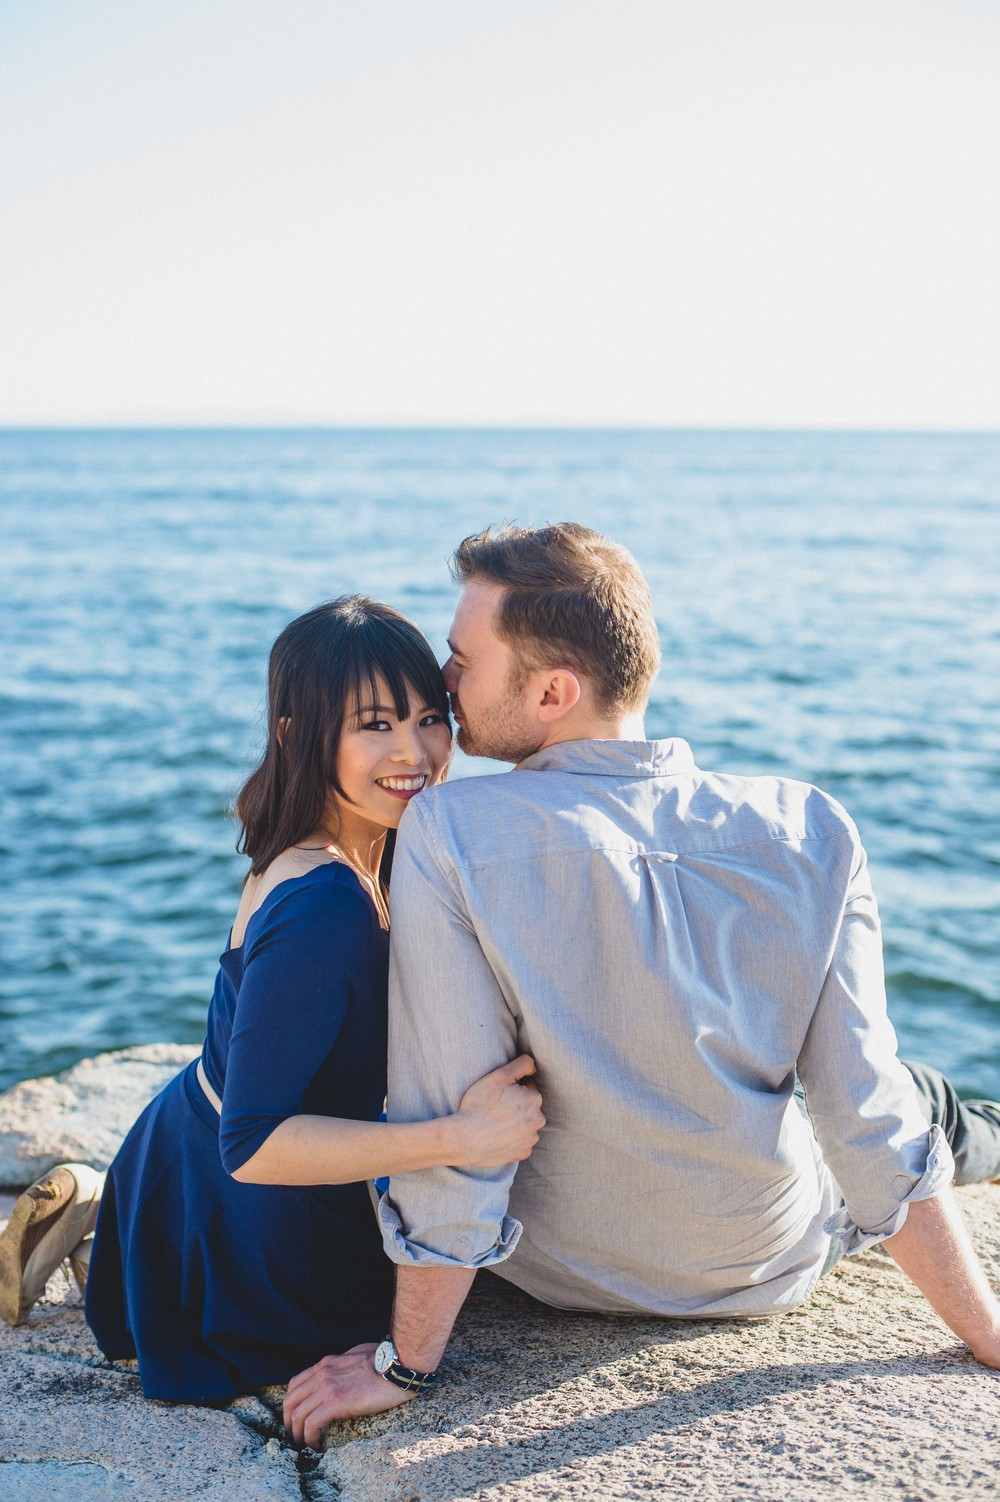 Vaccouver Lighthouse park engagement photography Edward Lai Photography-16.jpg